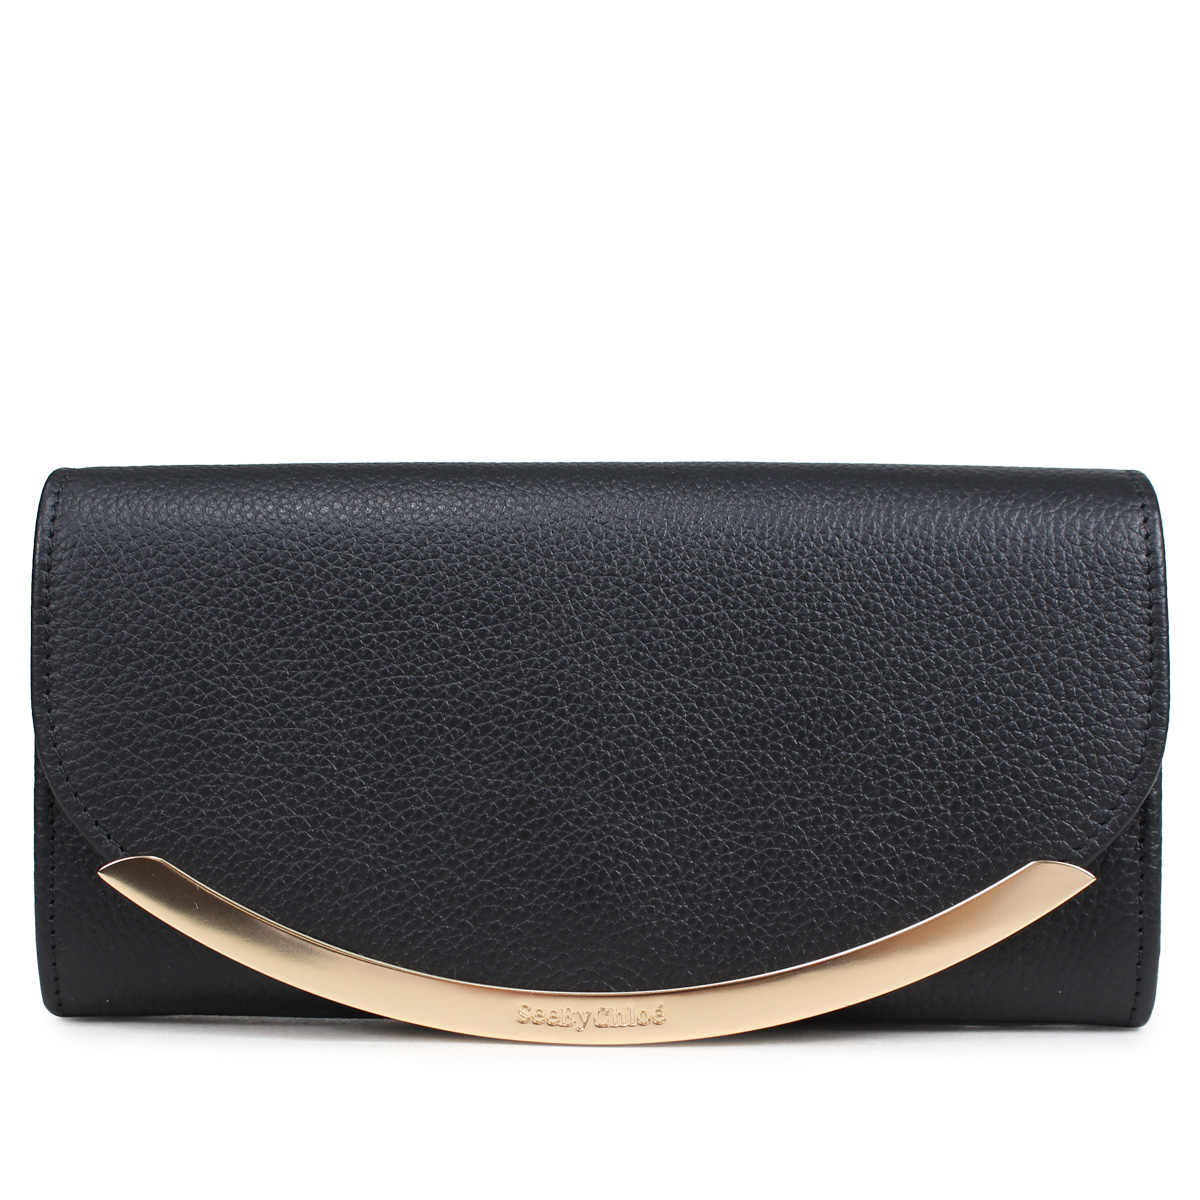 SEE BY CHLOE LIZZIE LONG WALLET WITH FLAP シーバイクロエ 財布 長財布 レディース レザー ブラック 黒 CHS17WP582349 [4/2再入荷]